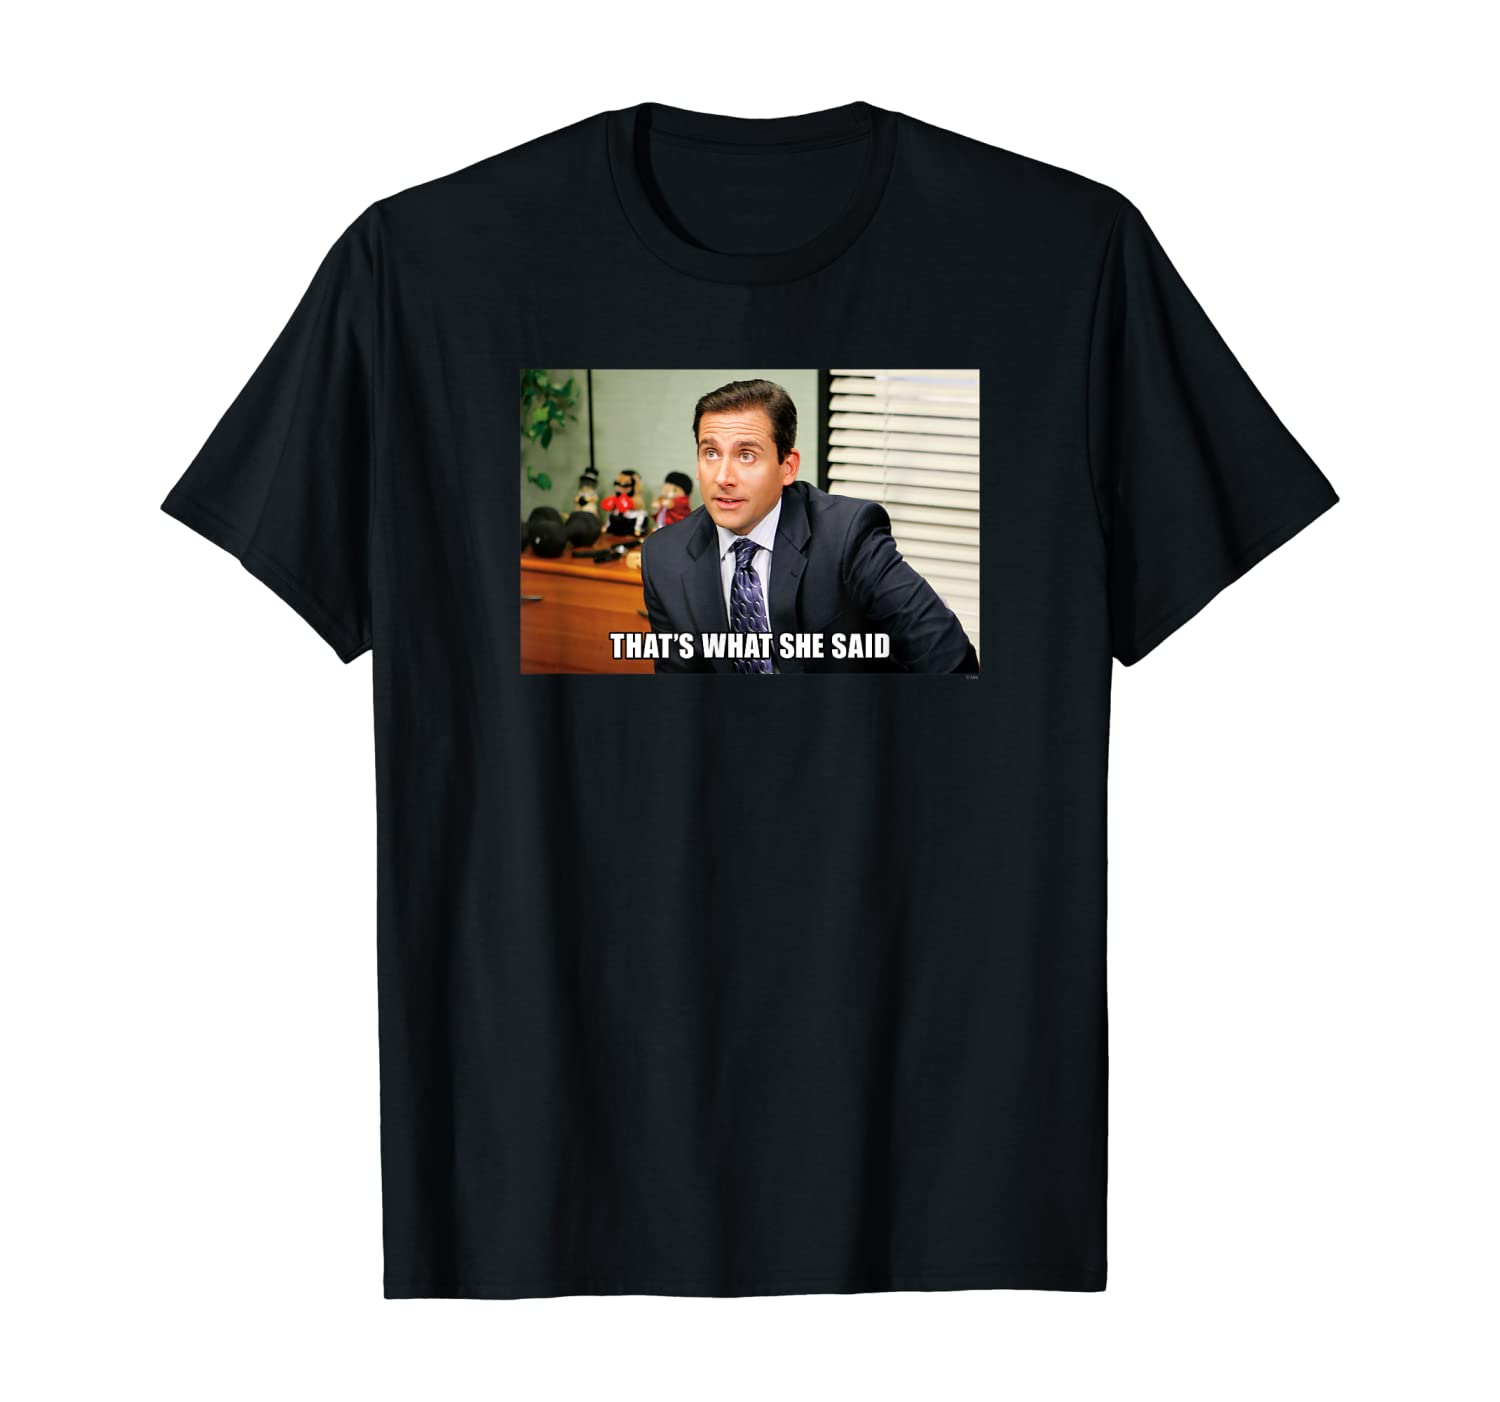 Top 10 The Office T Shirts Thats What She Said